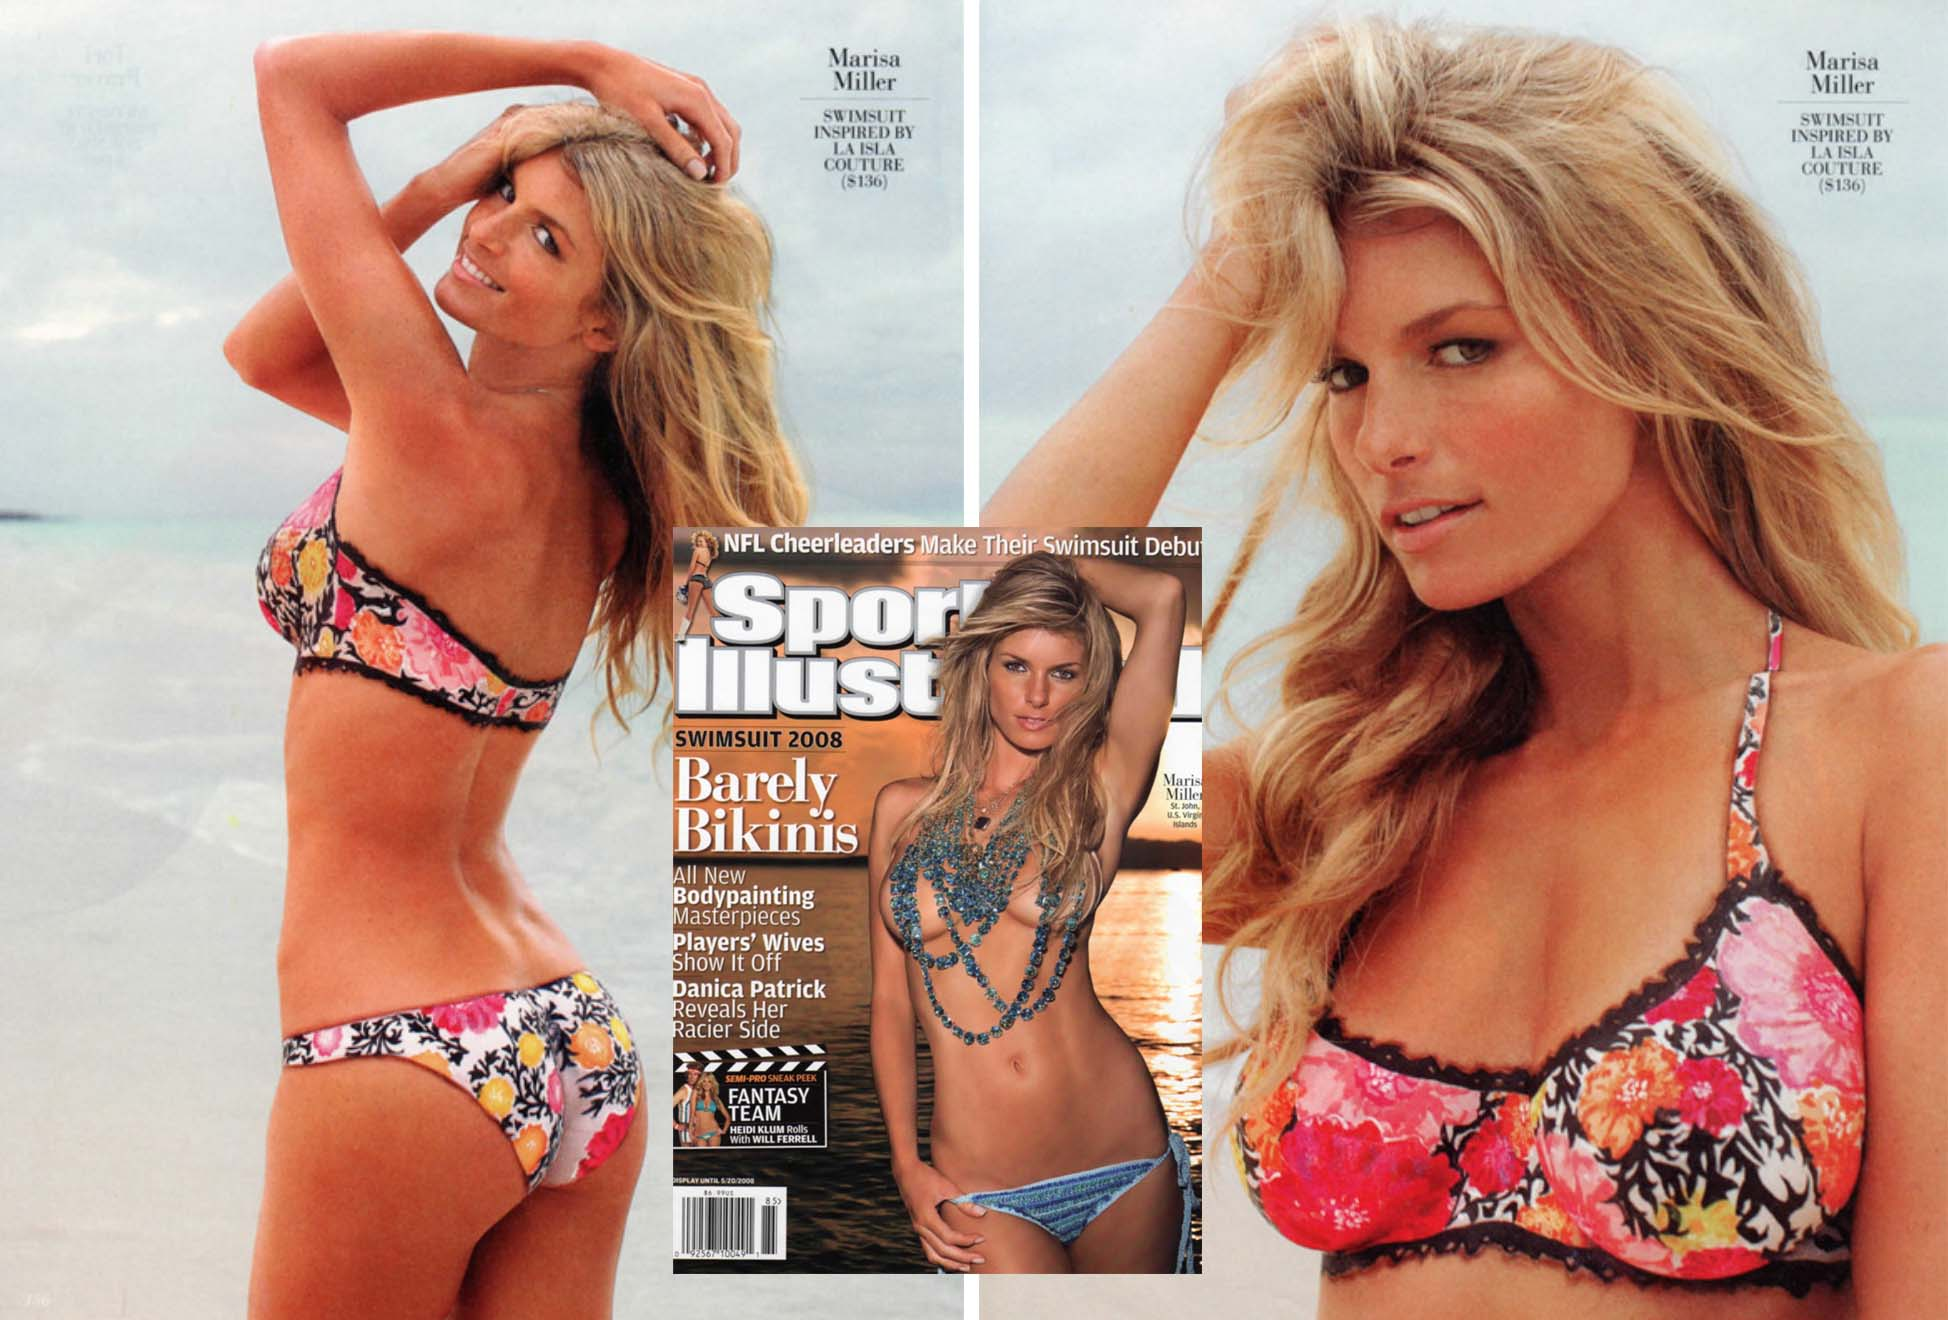 La Isla Brand. New Floral as seen painted on Marissa Miller in the Sport's Illustrated Swimsuit Issue.